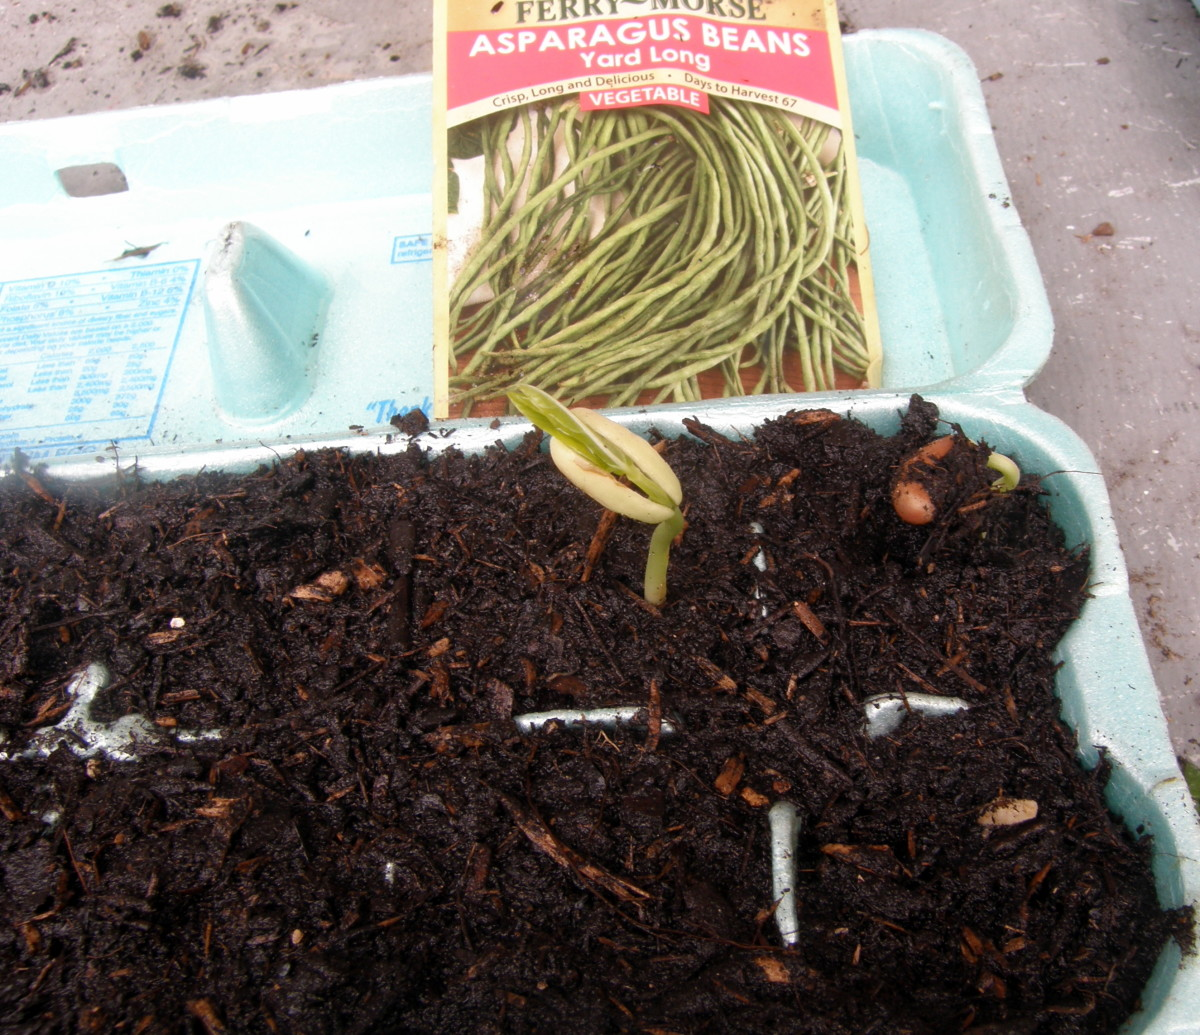 I used recycled egg cartons as seedling starters. They sprouted very quickly, in just two days.